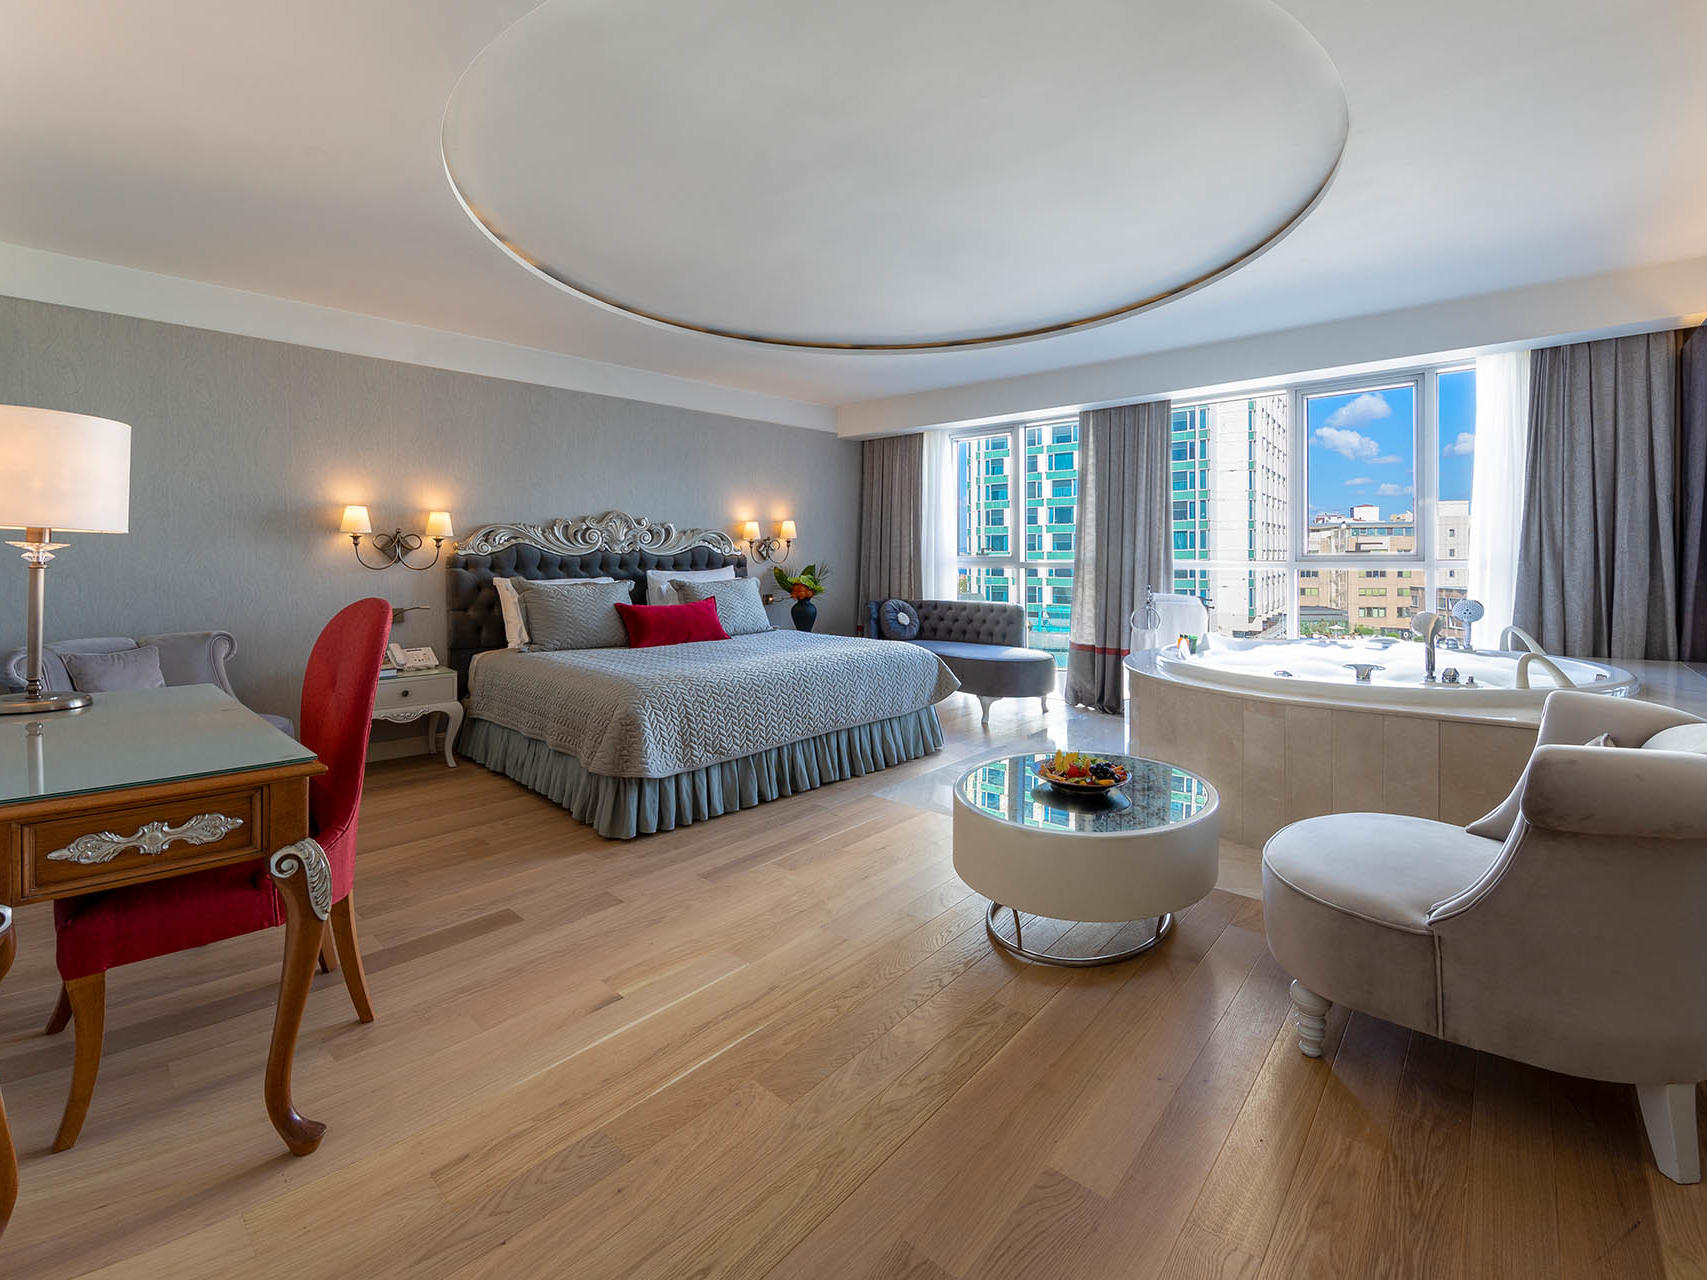 Luxury Suite at CVK Hotels in Istanbul